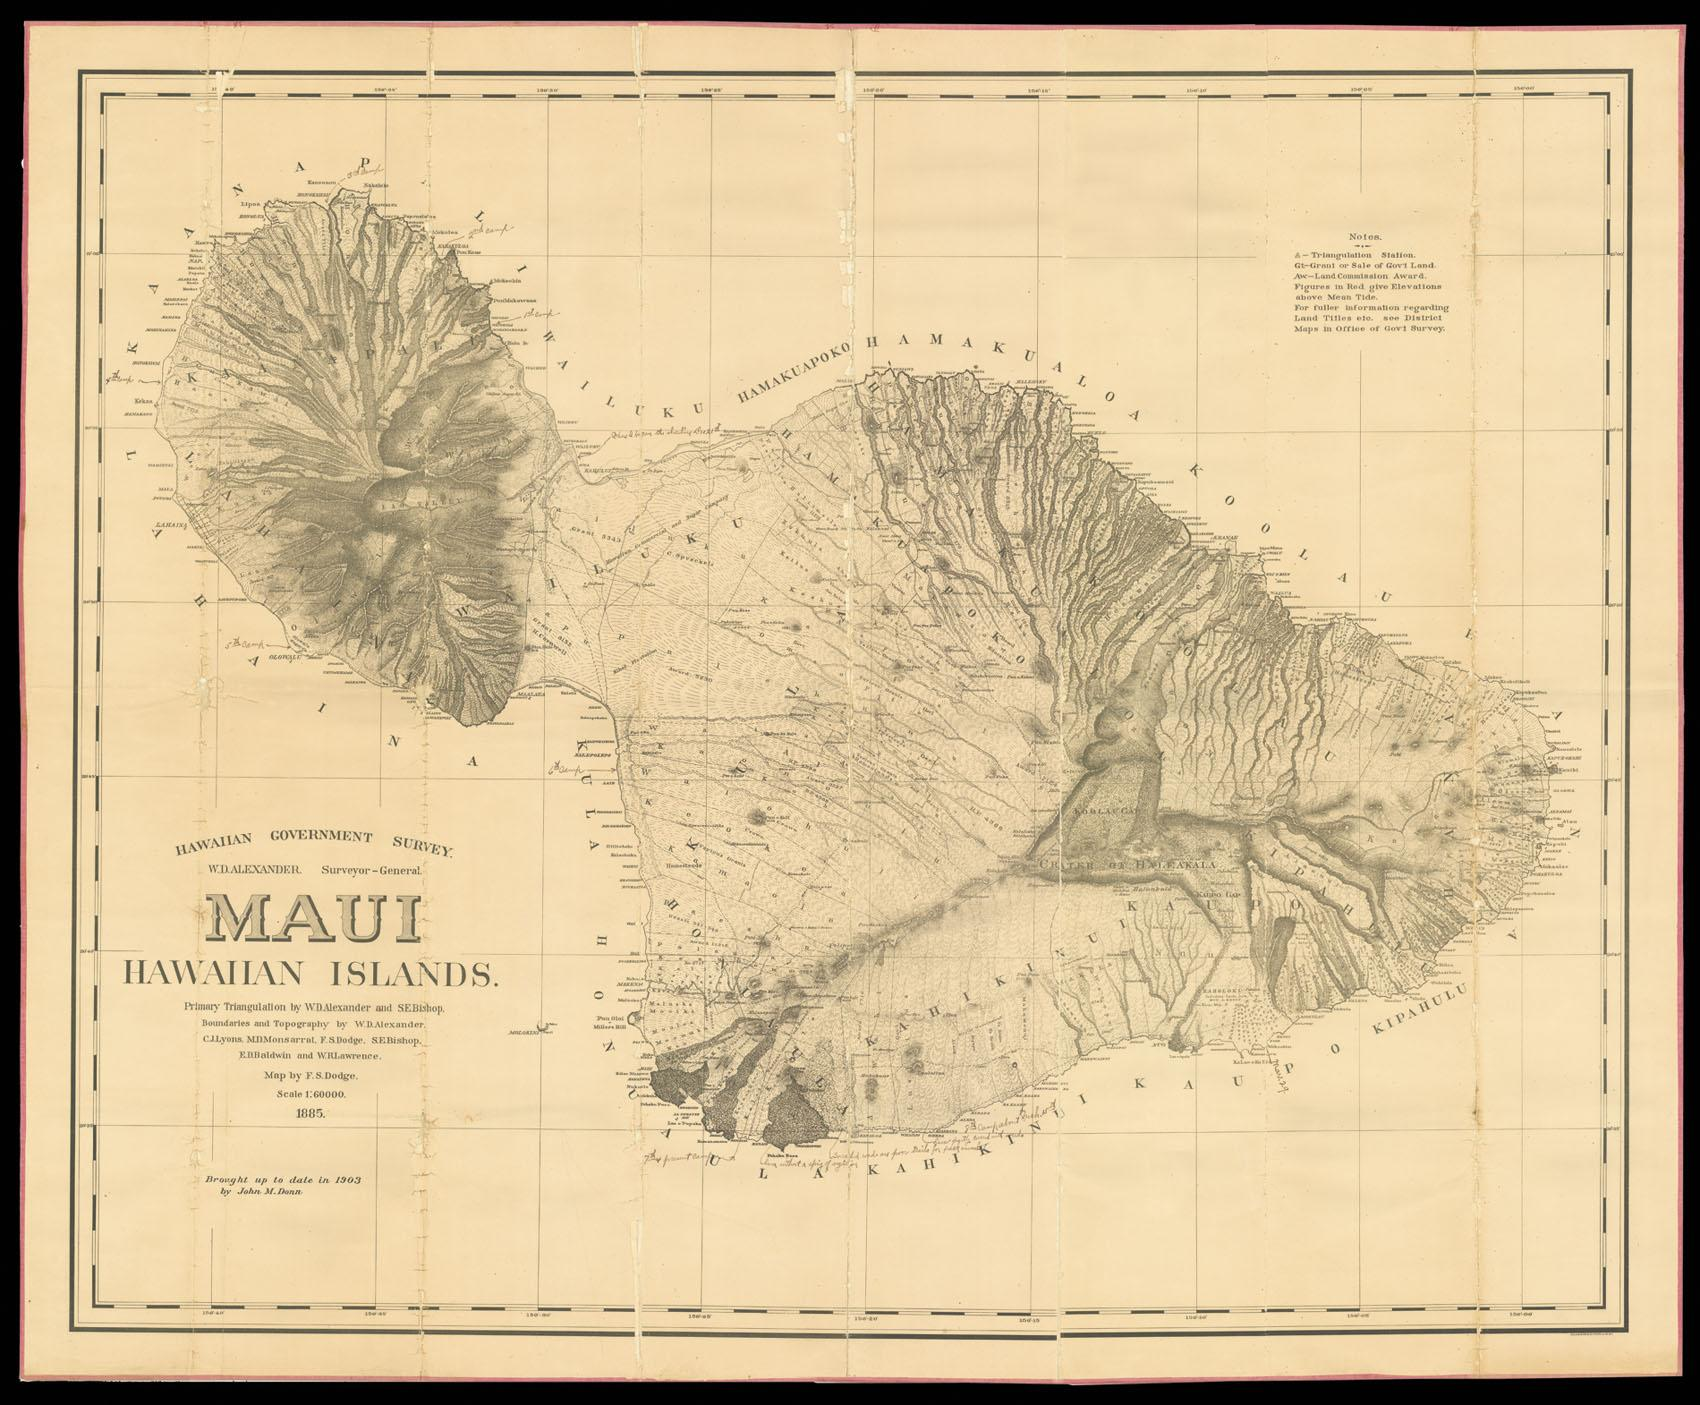 Topographic Map Of Maui.Hawaiian Government Survey W D Alexander Surveyor General Map Of